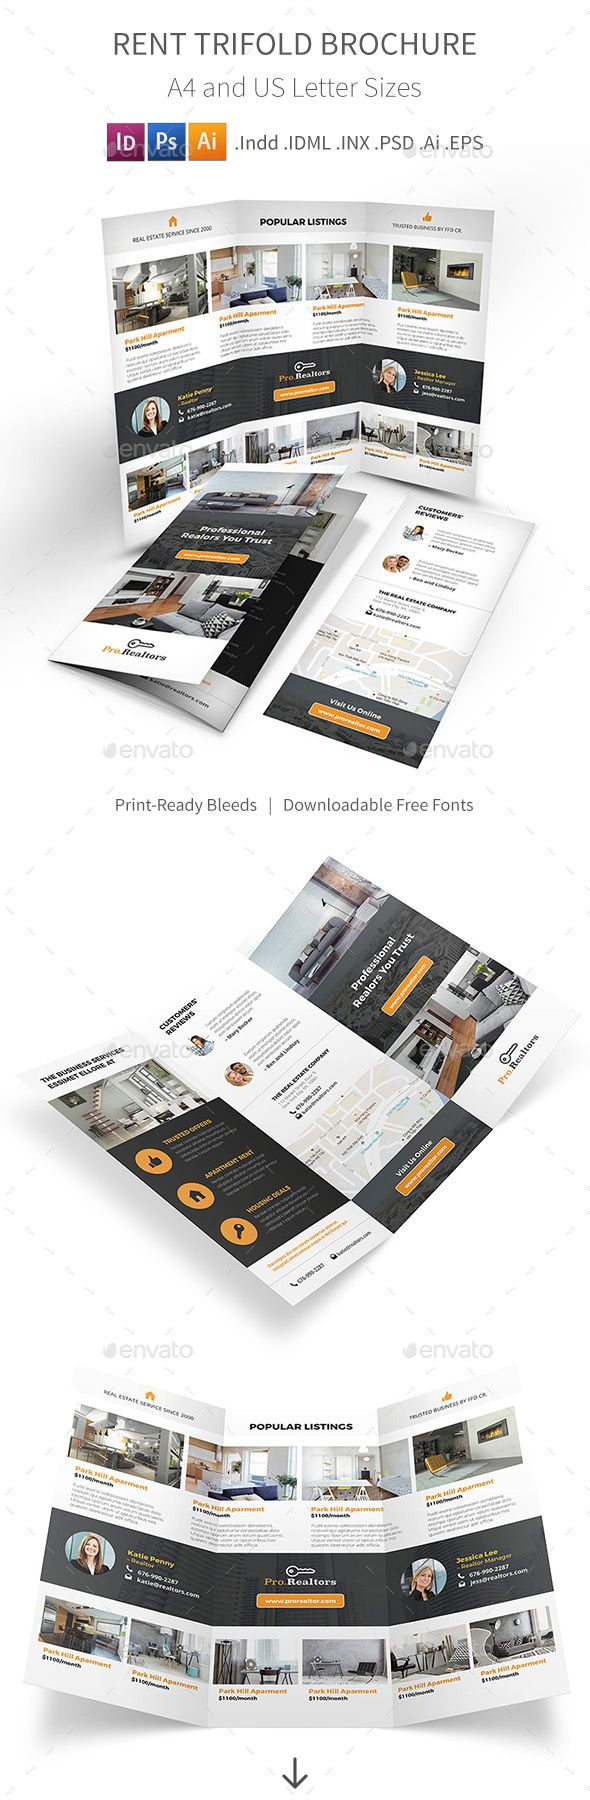 Rent Trifold Brochure